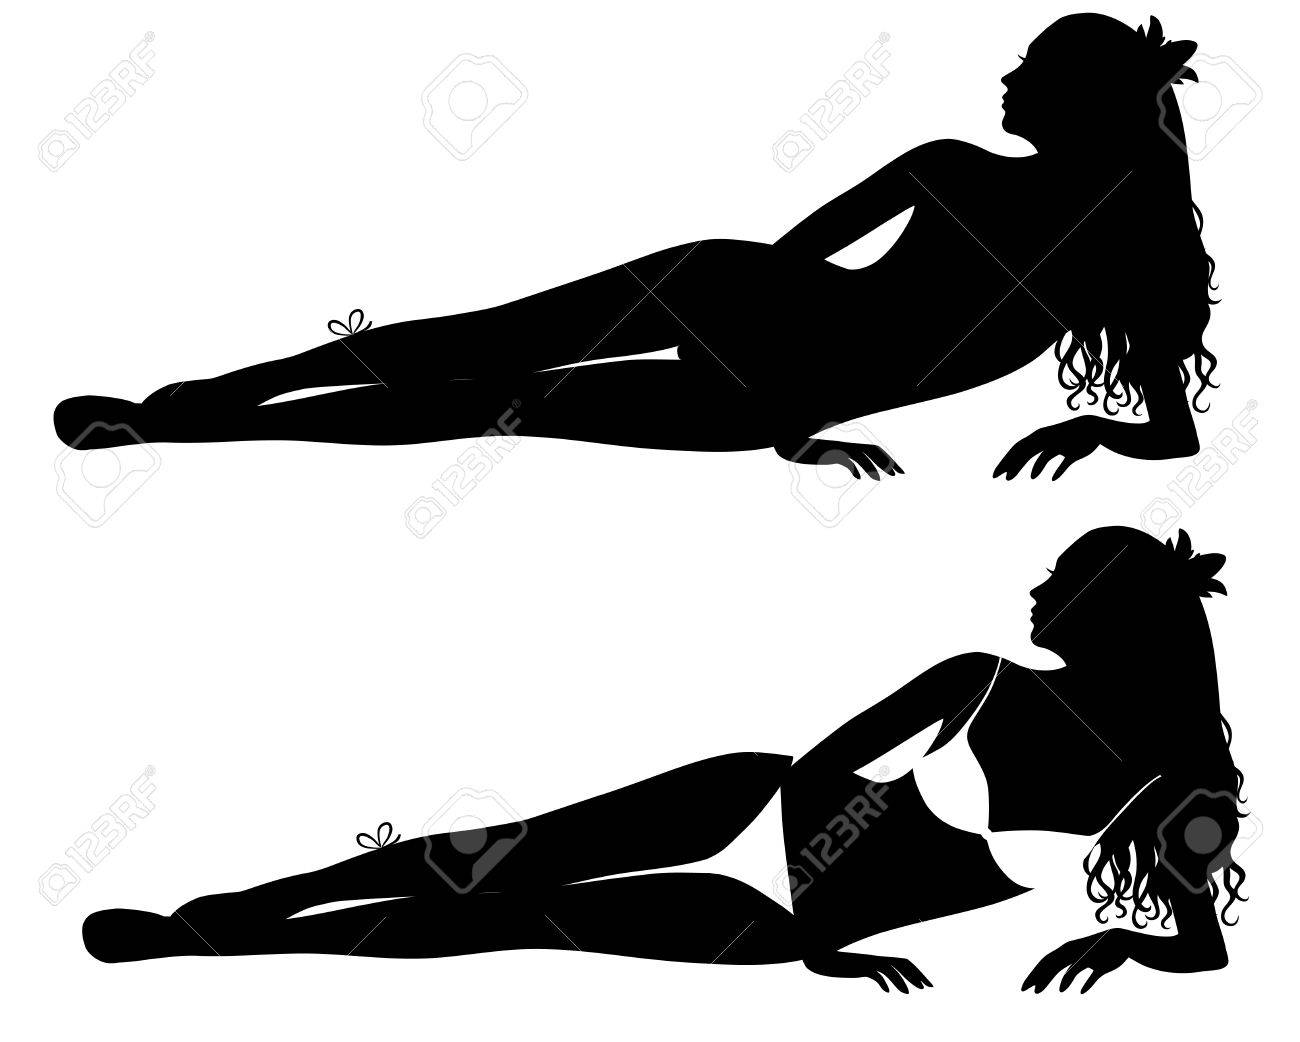 Laying silhouettes of a woman in bikini. Stock Vector - 6170602